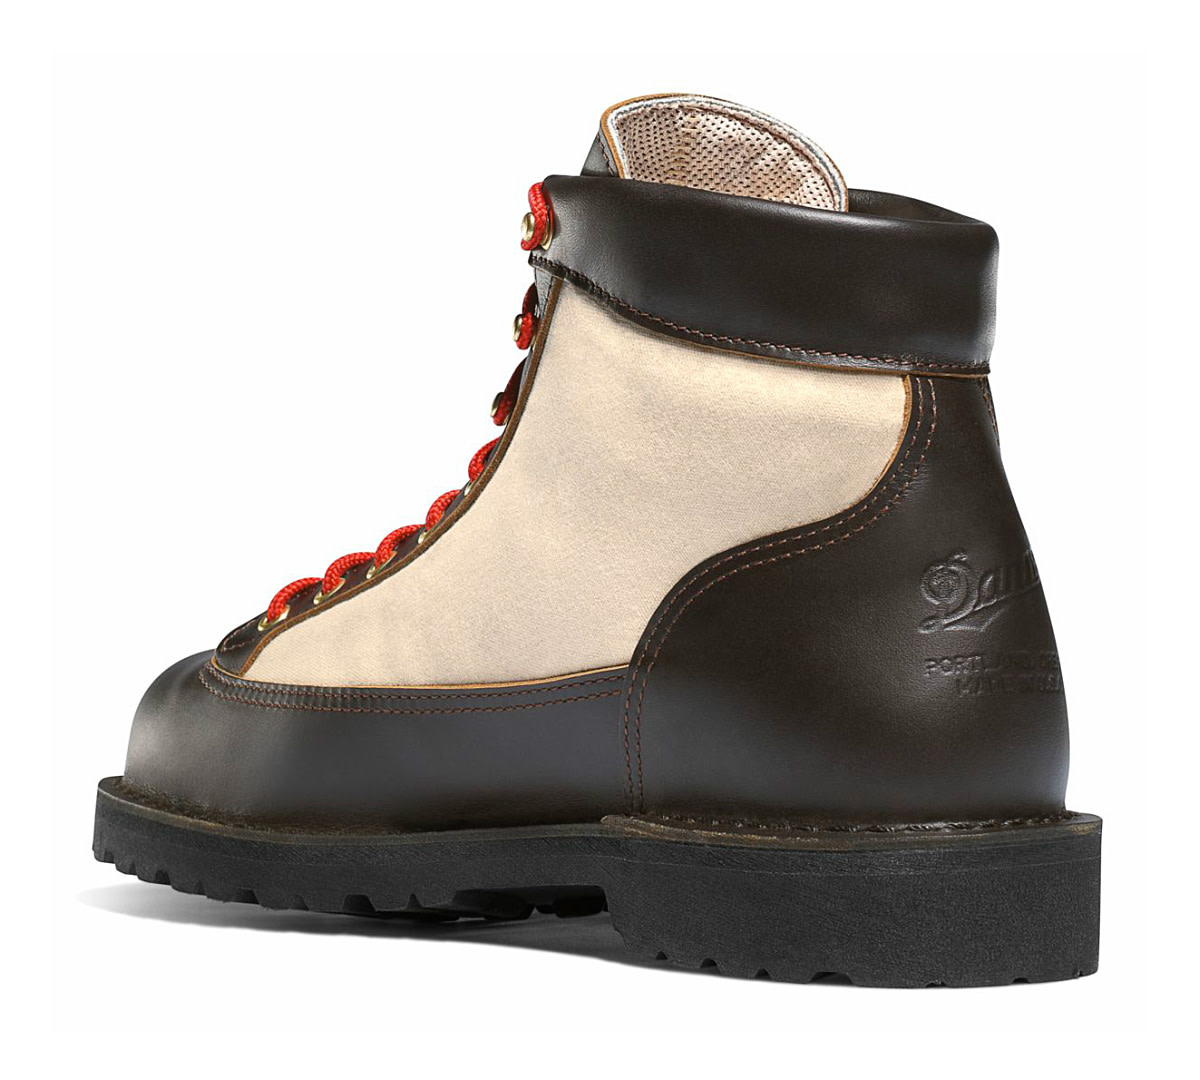 beckel-canvas-products-x-danner-light-beckel-boot-collection-21